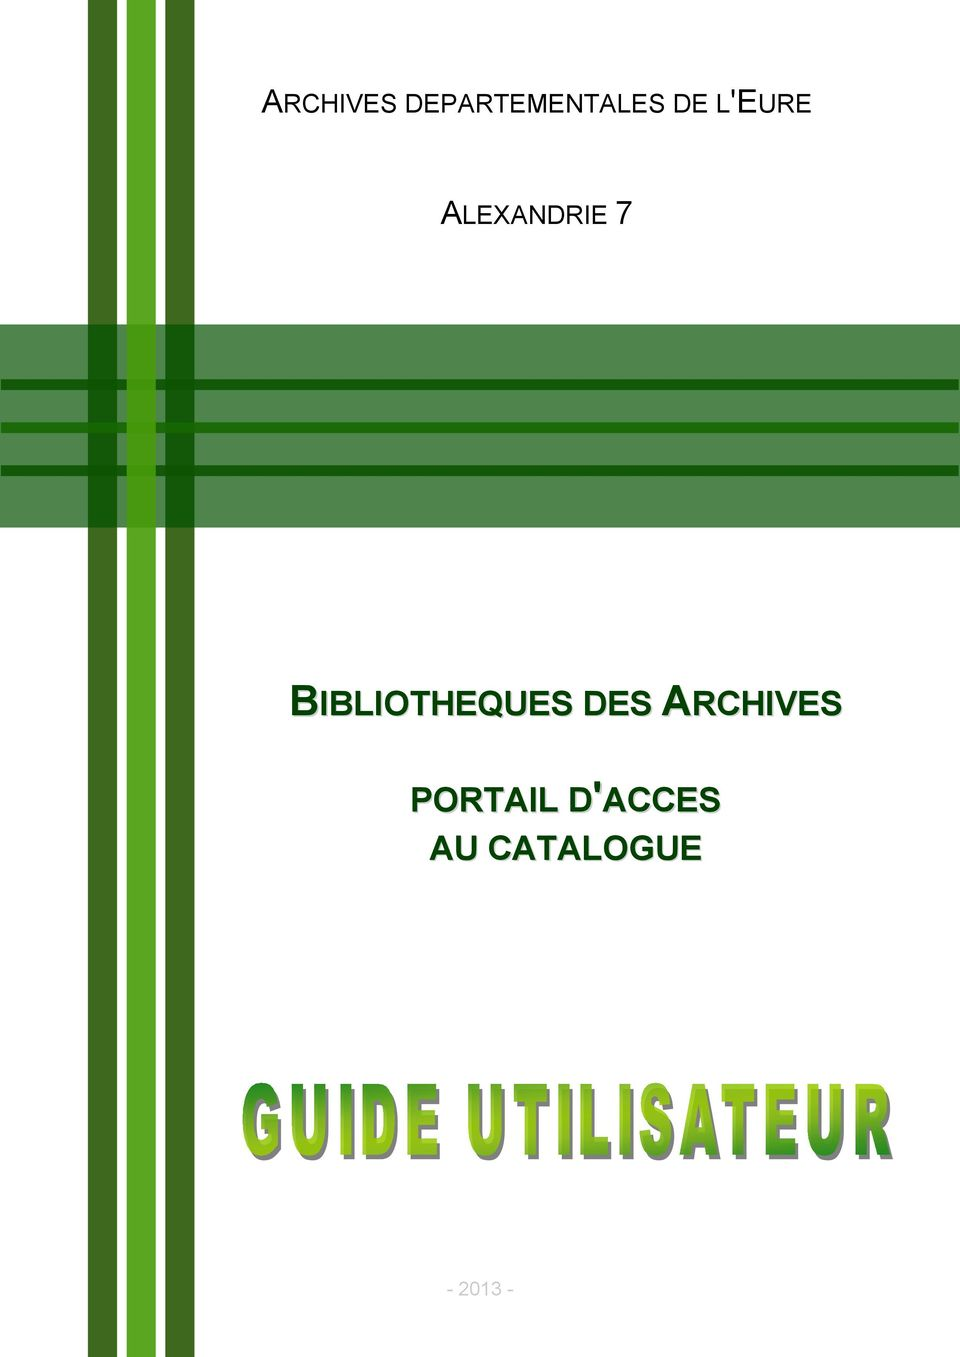 BIBLIOTHEQUES DES ARCHIVES